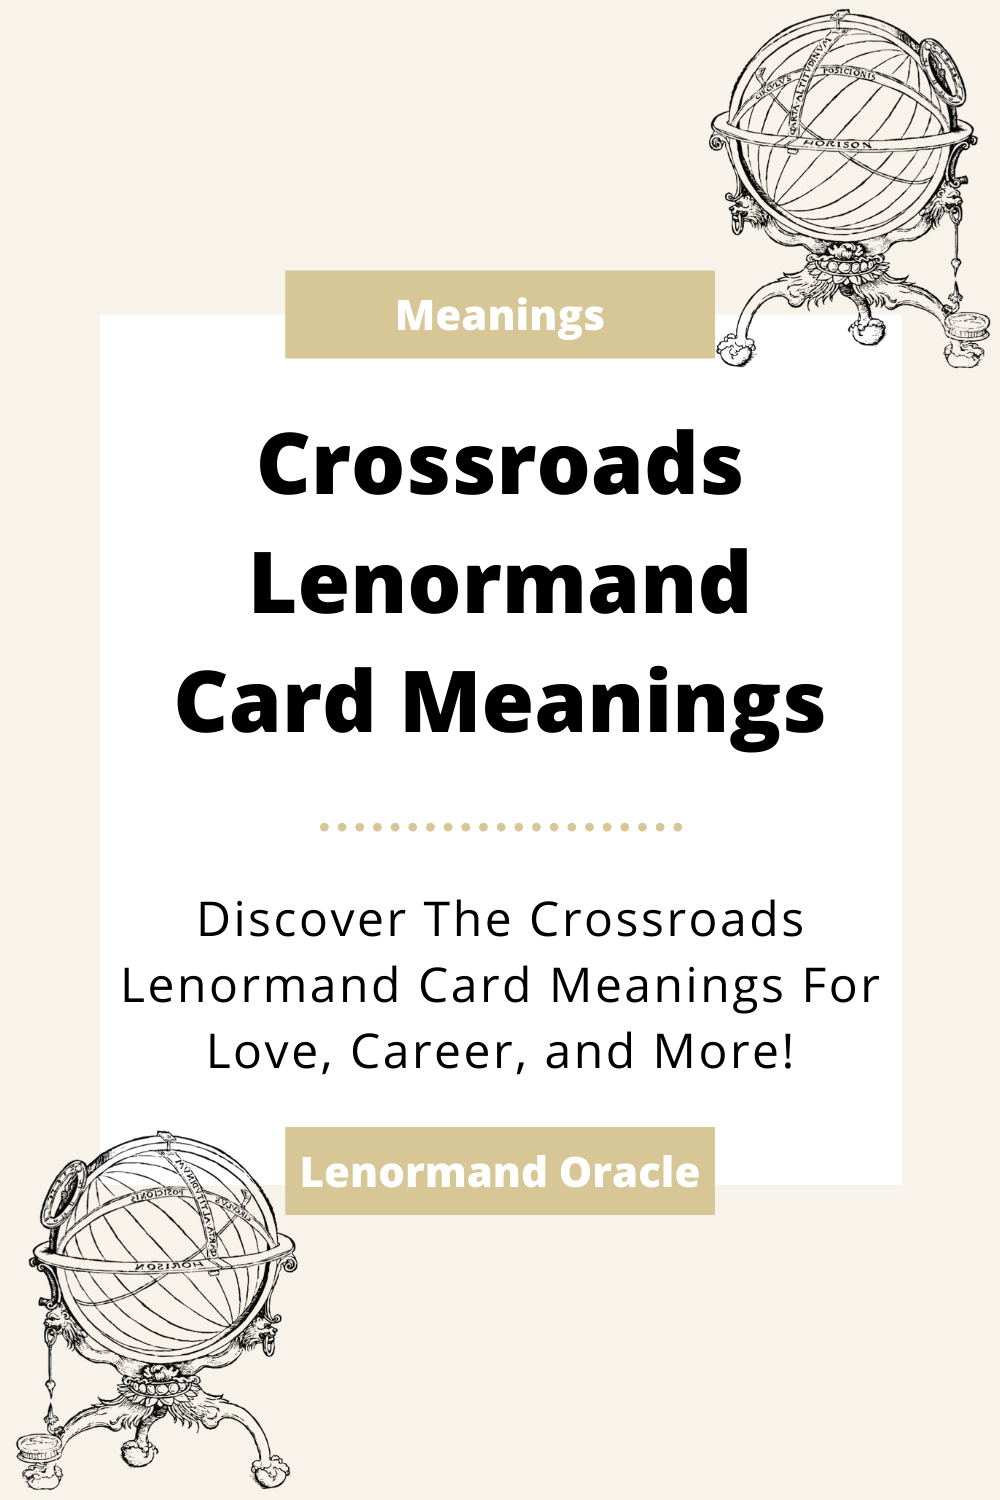 Learn the beginner Crossroads Lenormand Card meanings for general readings, love, business, career and more! Learn the good and bad aspects of the Crossroads. Crossroads predicts choices